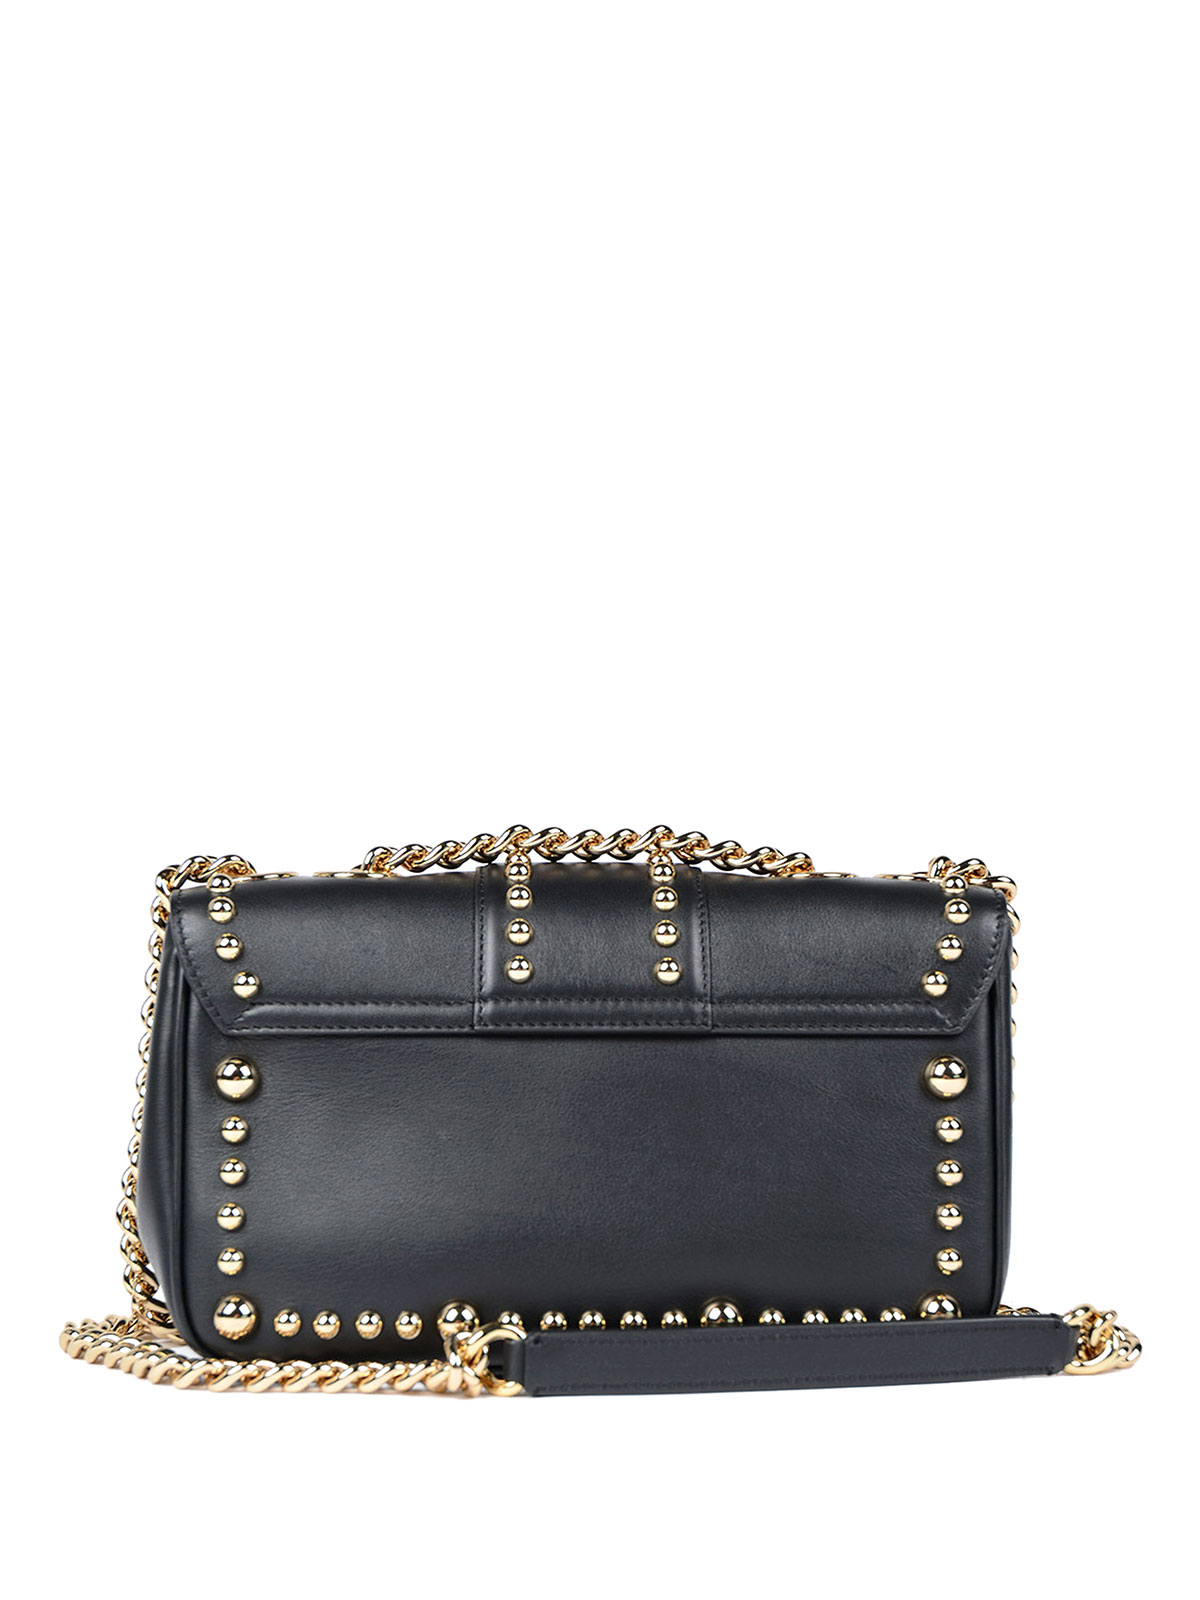 iKRIX DOLCE   GABBANA  cross body bags - Studded leather Lucia bag 0d3376ced9777